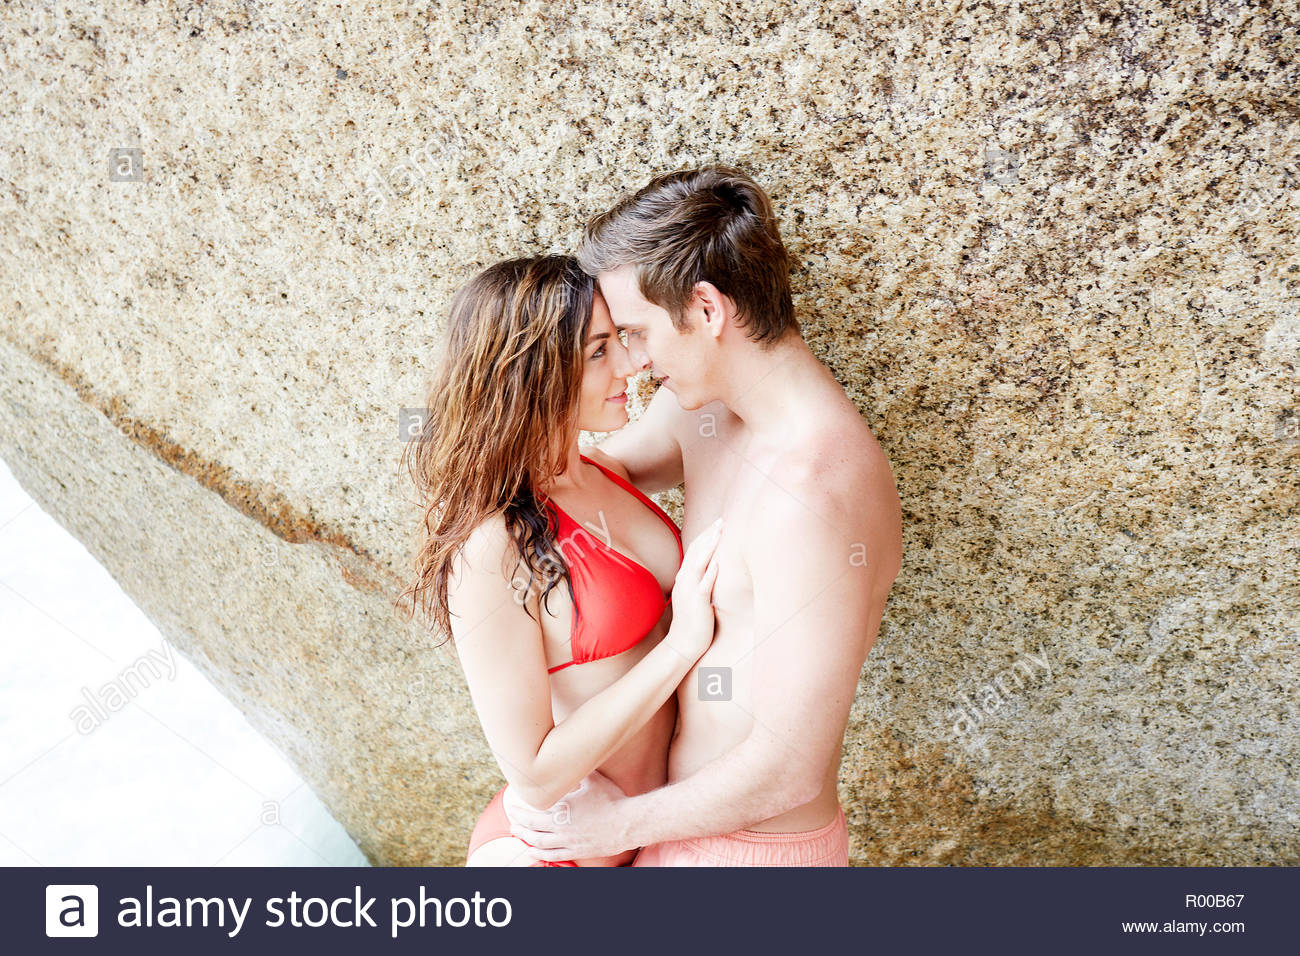 Young couple embracing by boulder on beach - Stock Image